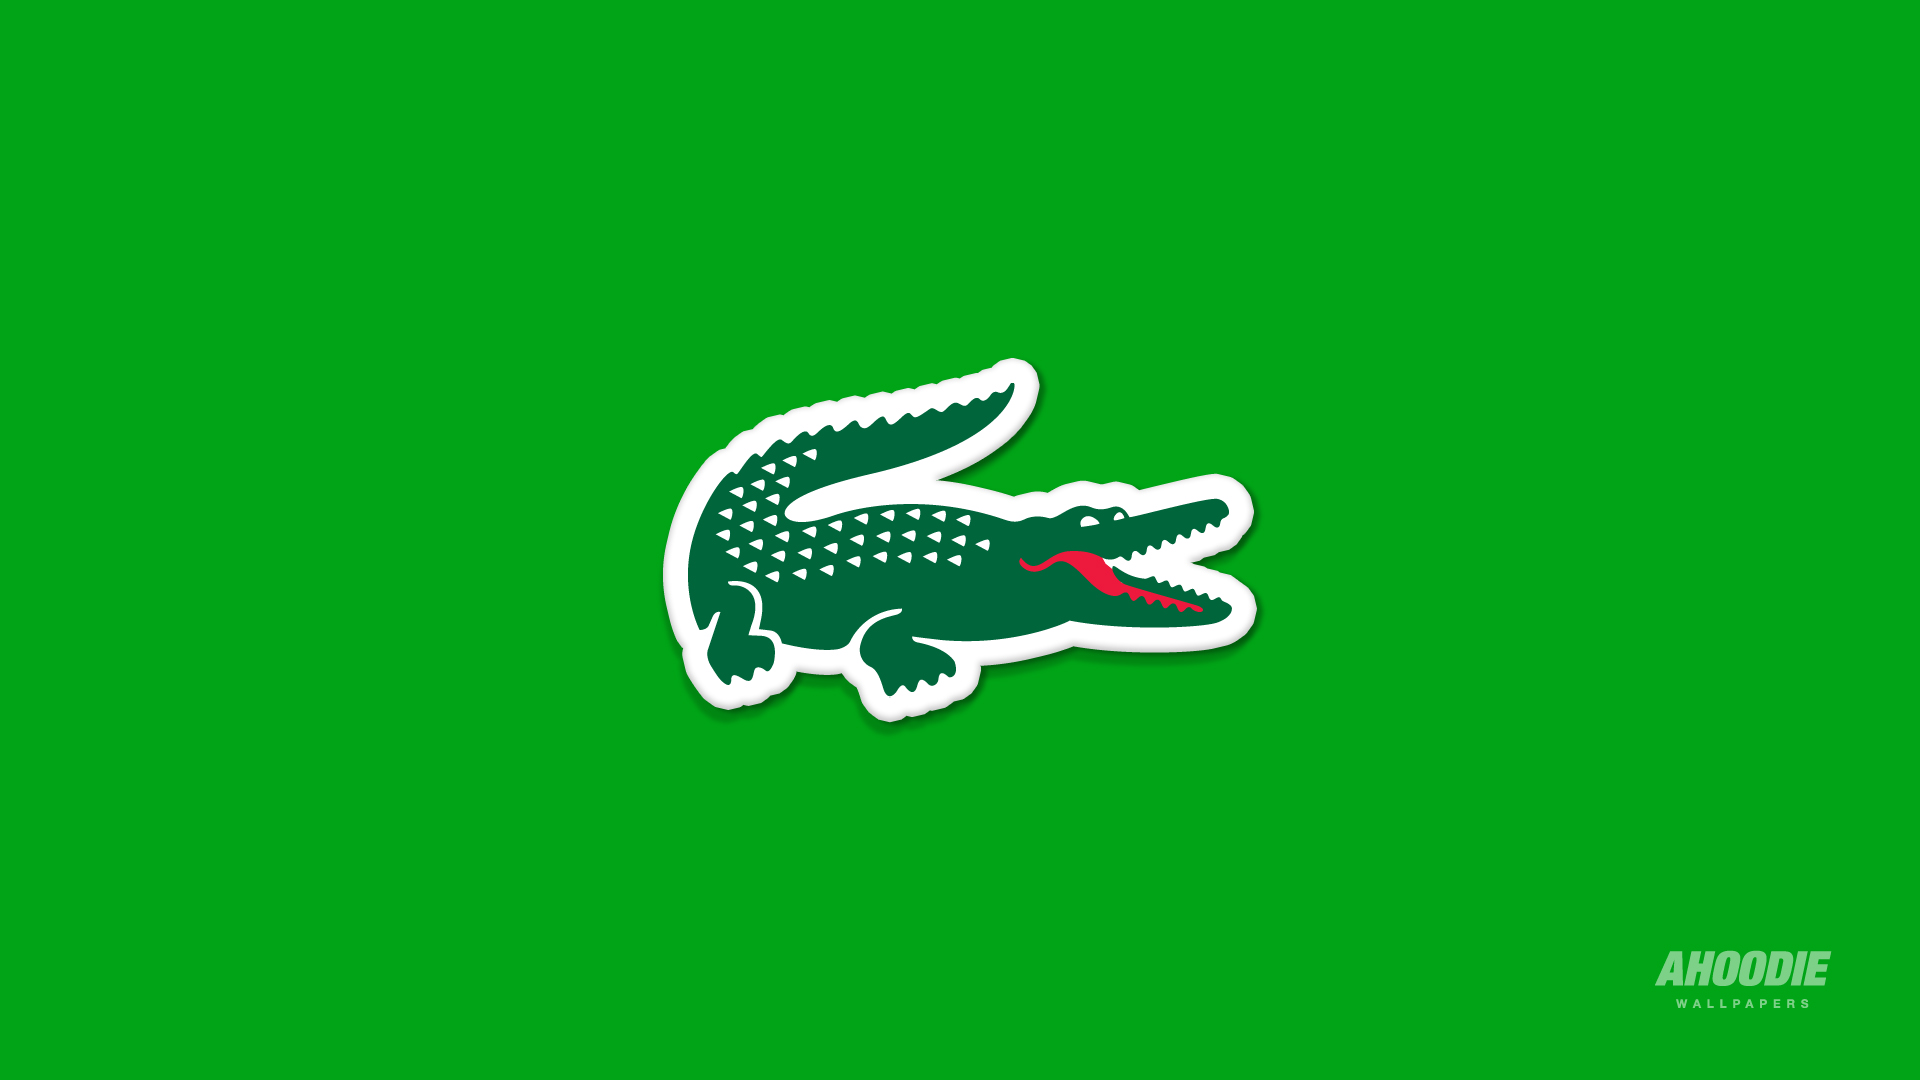 WALLPAPERS: Lacoste Desktop Background Wallpaper | AHOODIE